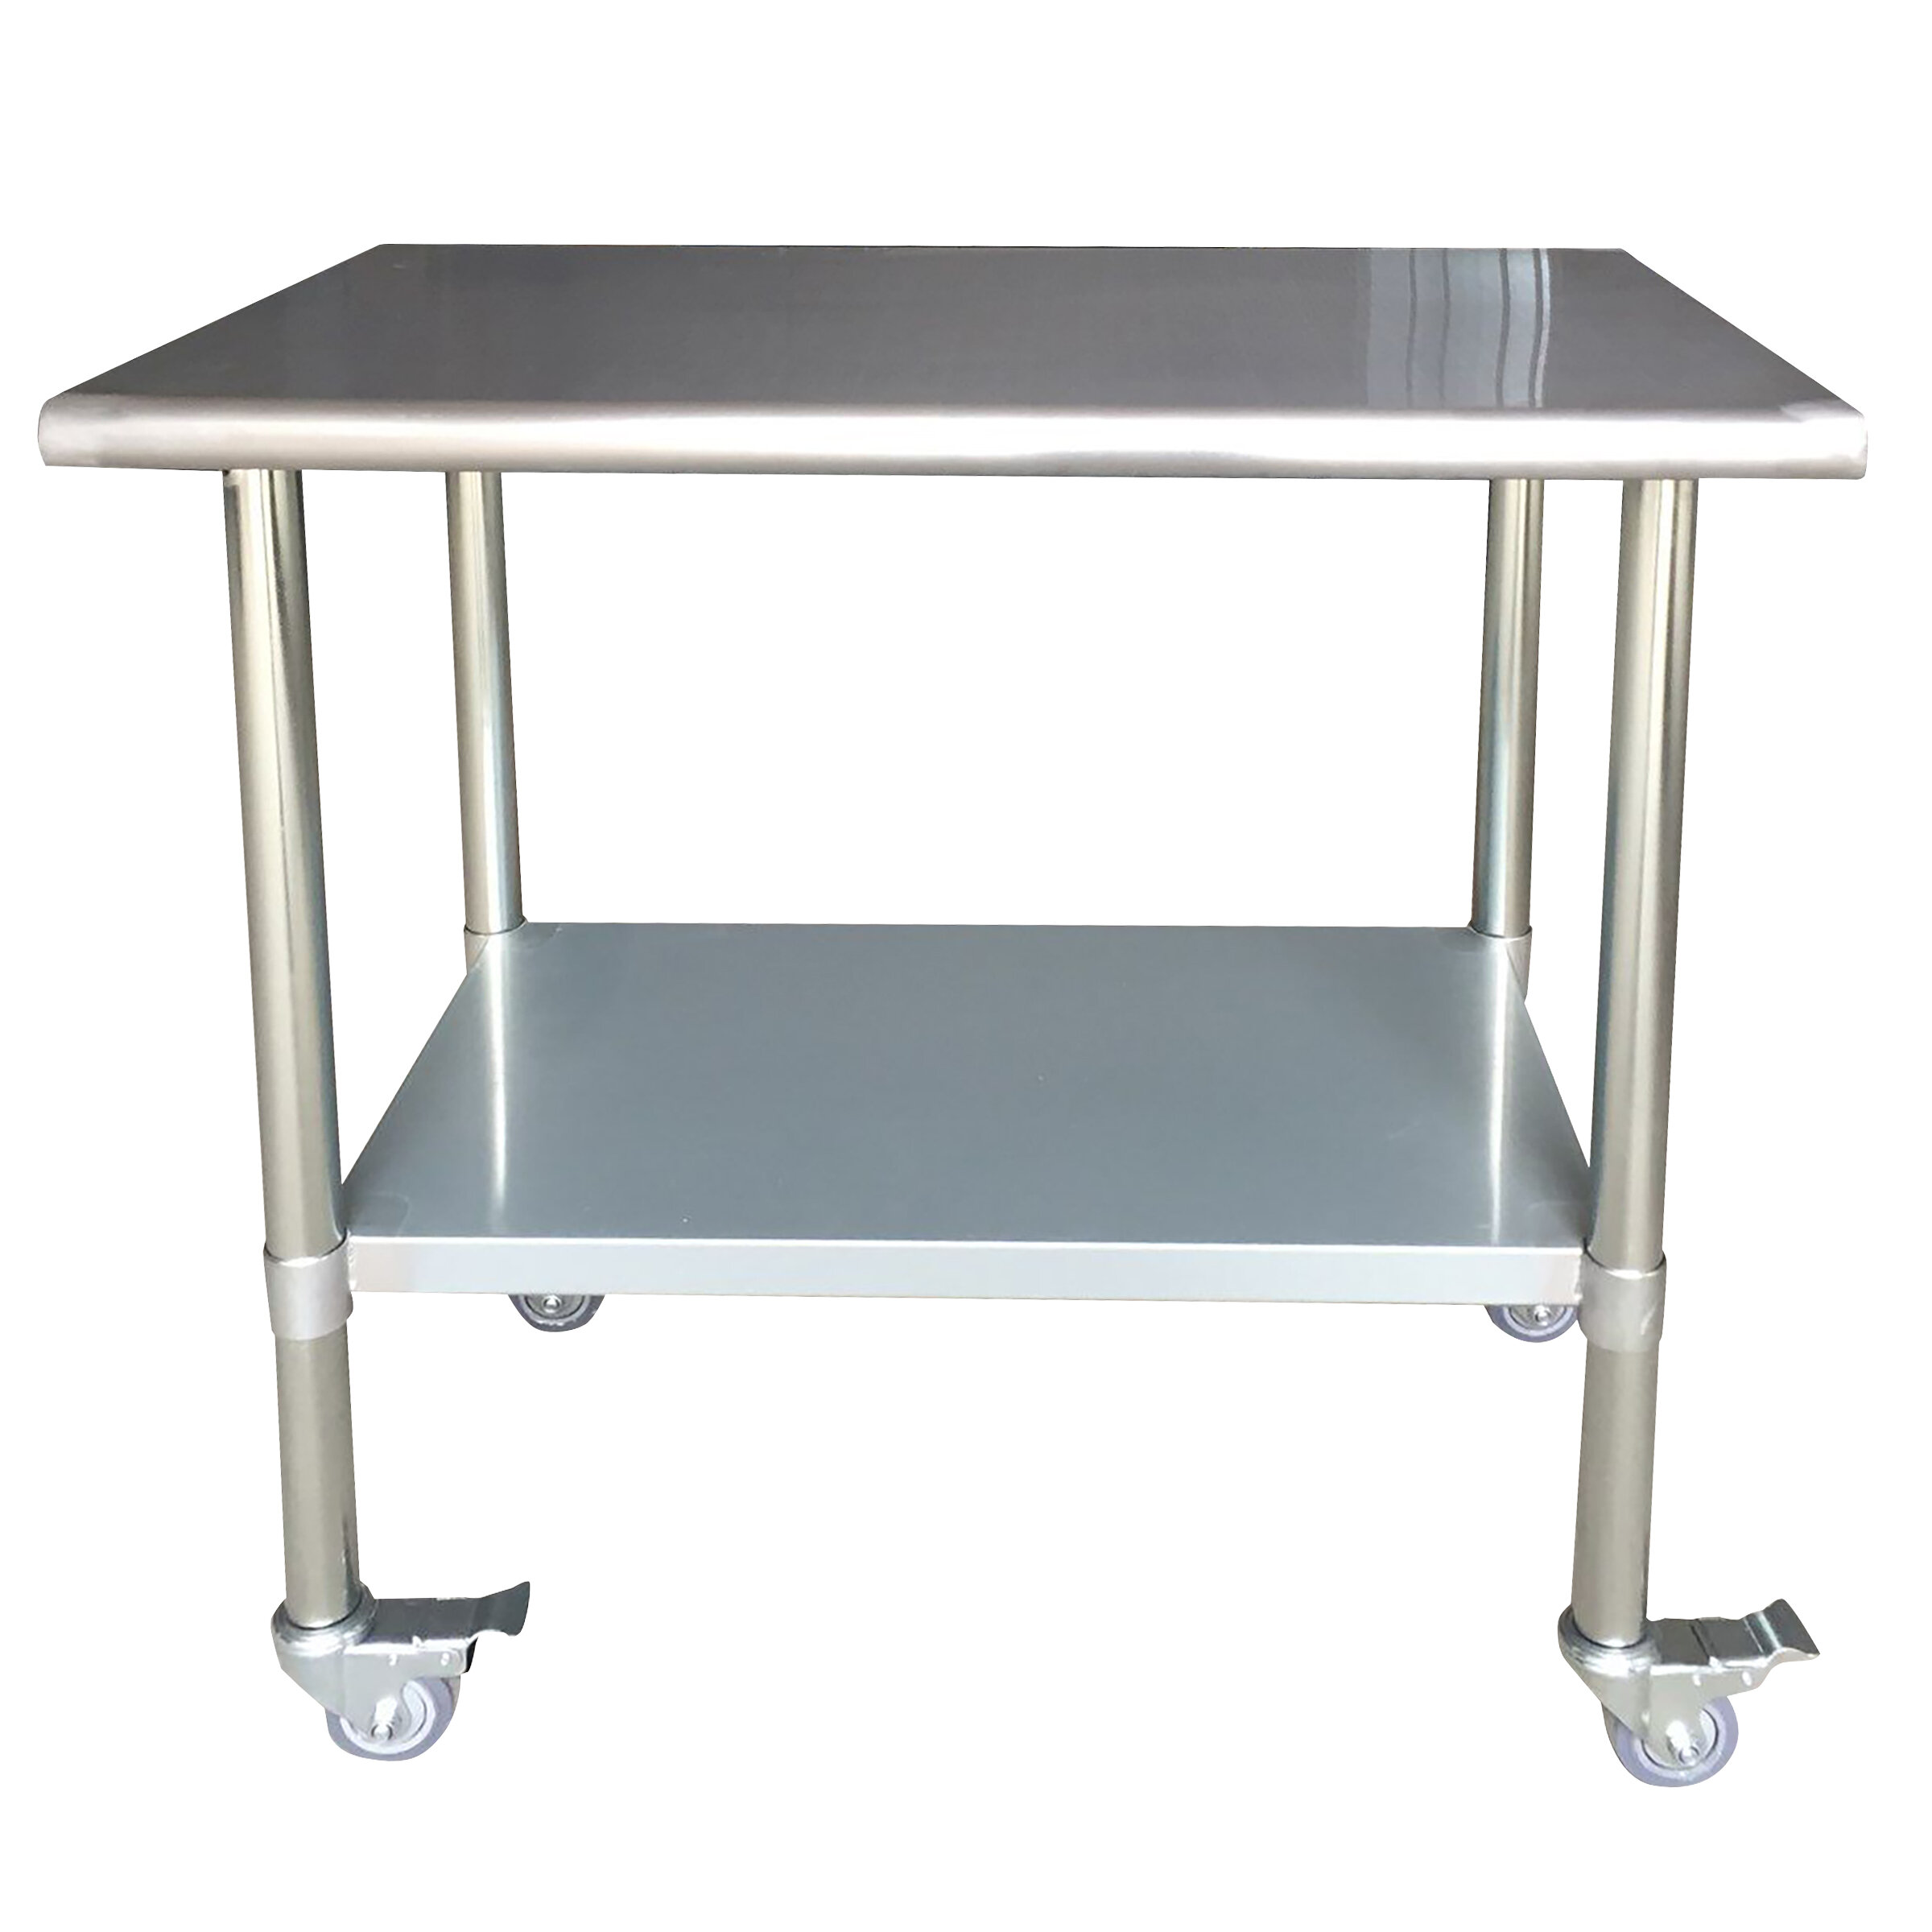 AmeriHome Stainless Steel Top Workbench with Casters | Wayfair